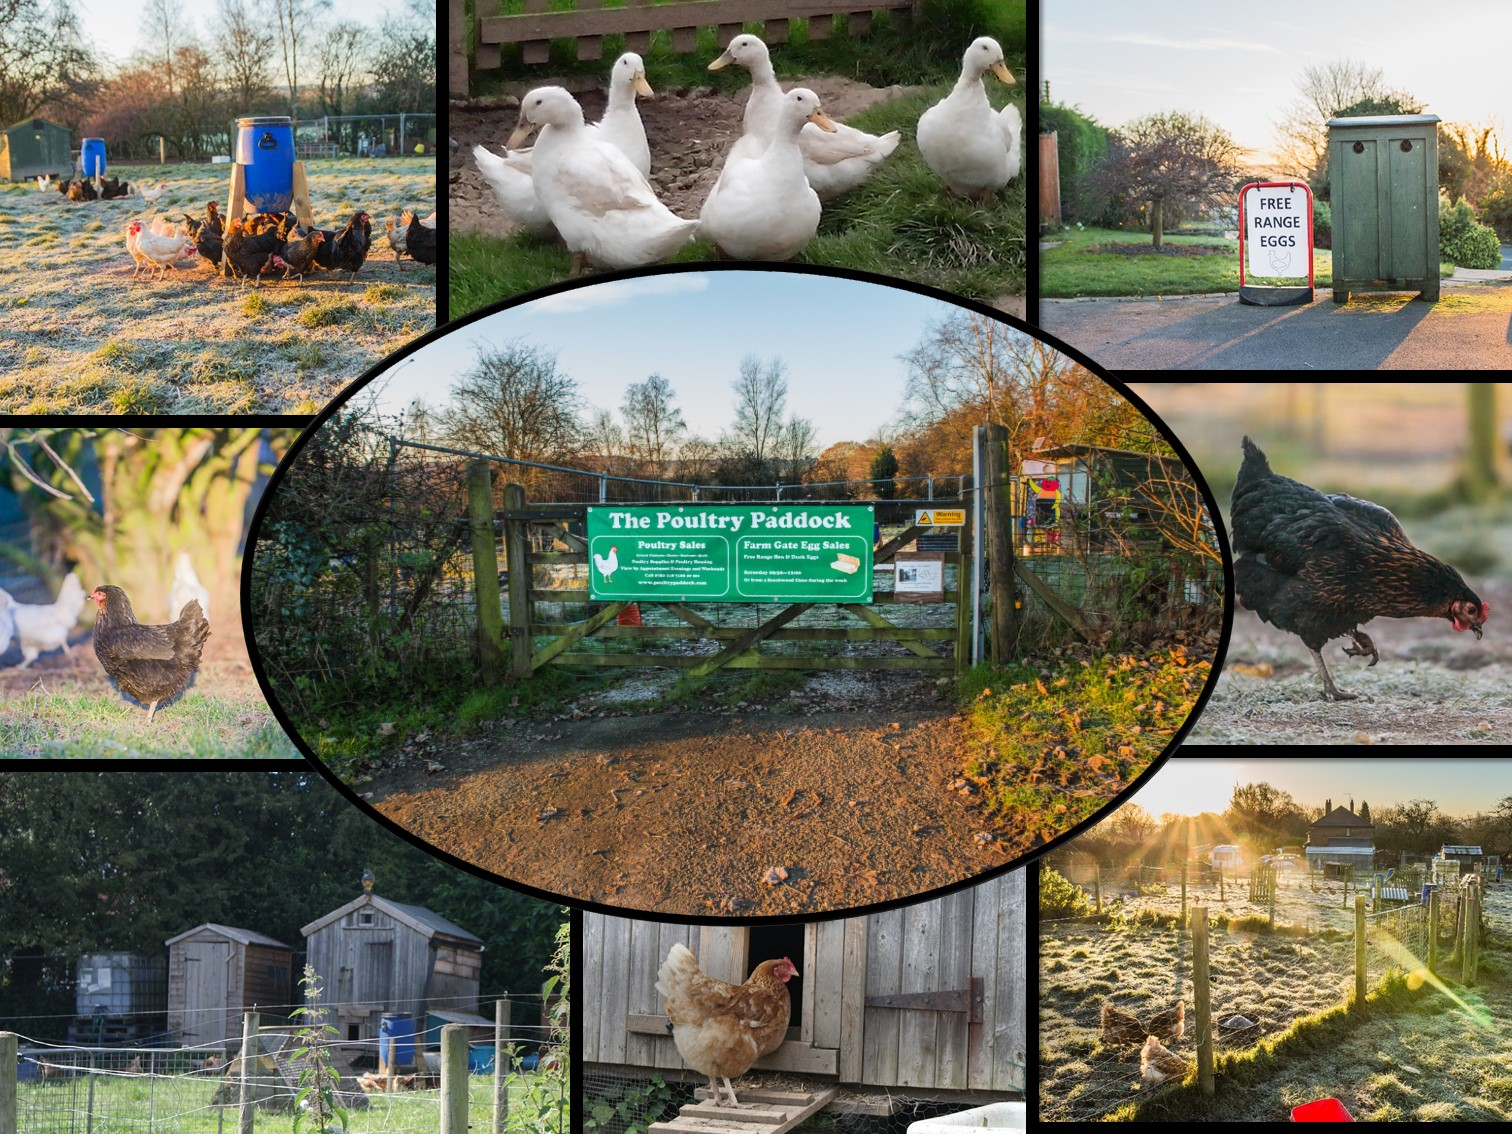 Chickens for sale - the Poultry Paddock